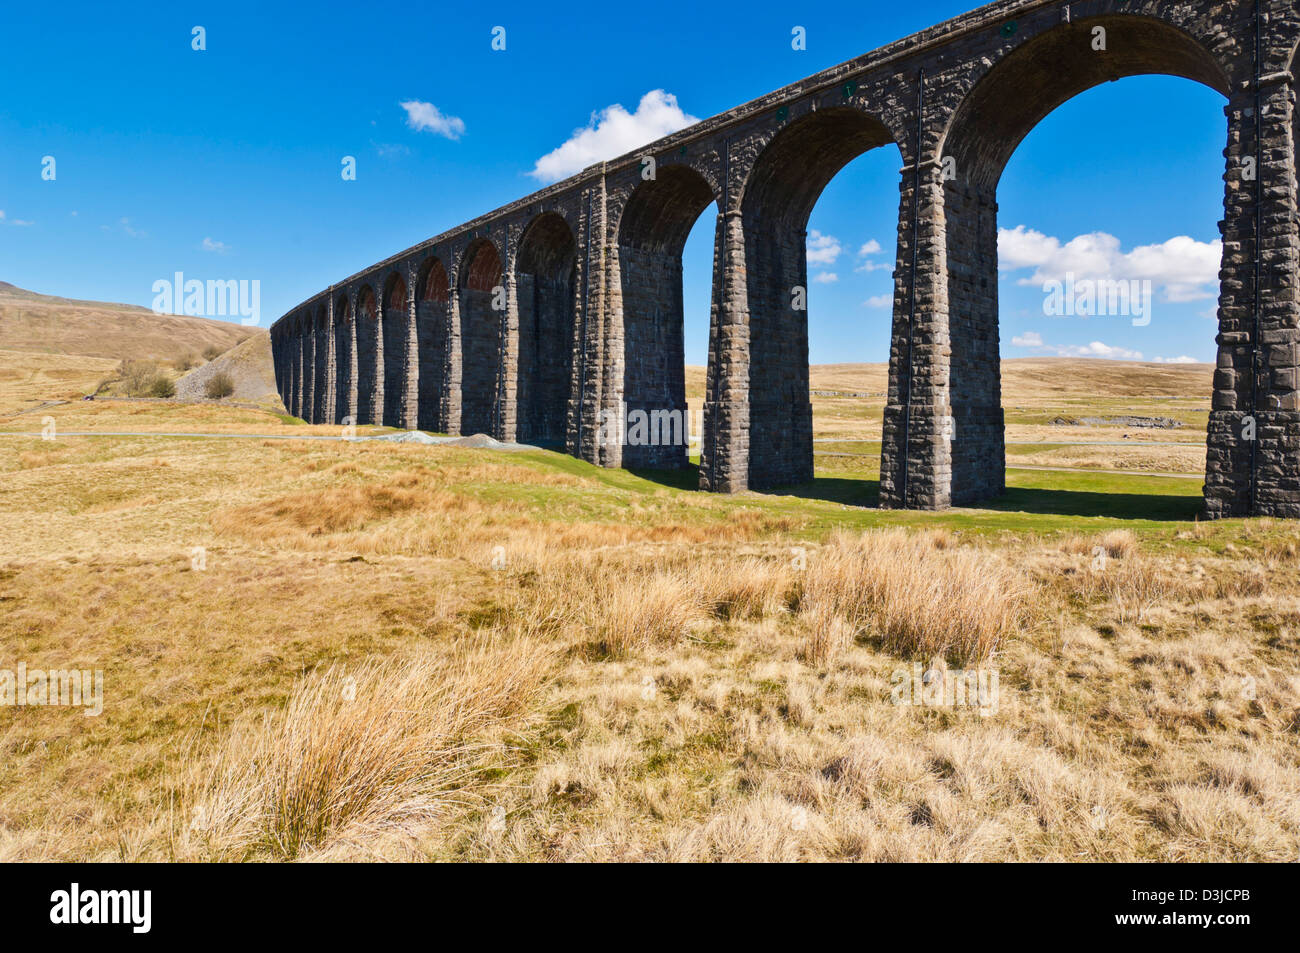 Ribblehead railway viaduct on the Settle to Carlisle rail route, Yorkshire Dales, England, UK, GB, EU, Europe - Stock Image